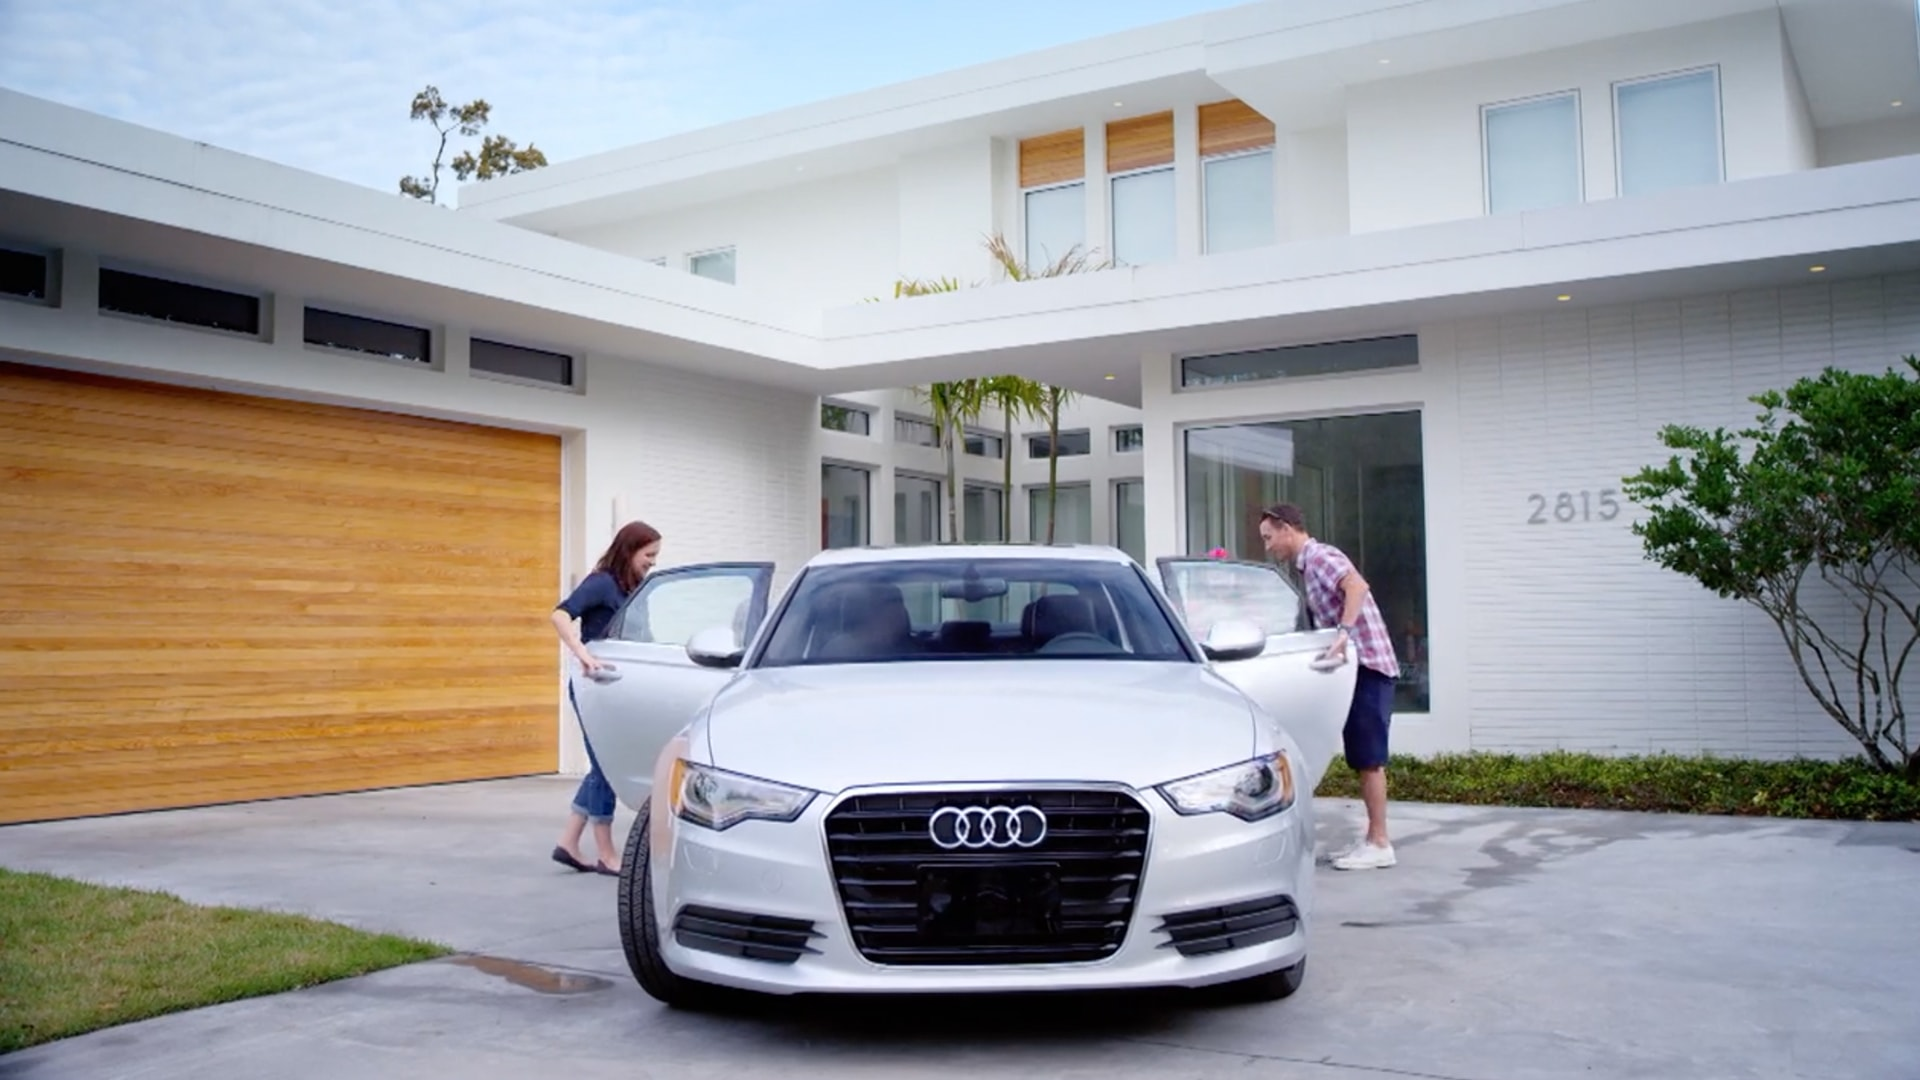 A man and woman about to get into their silver audi in front of their house.